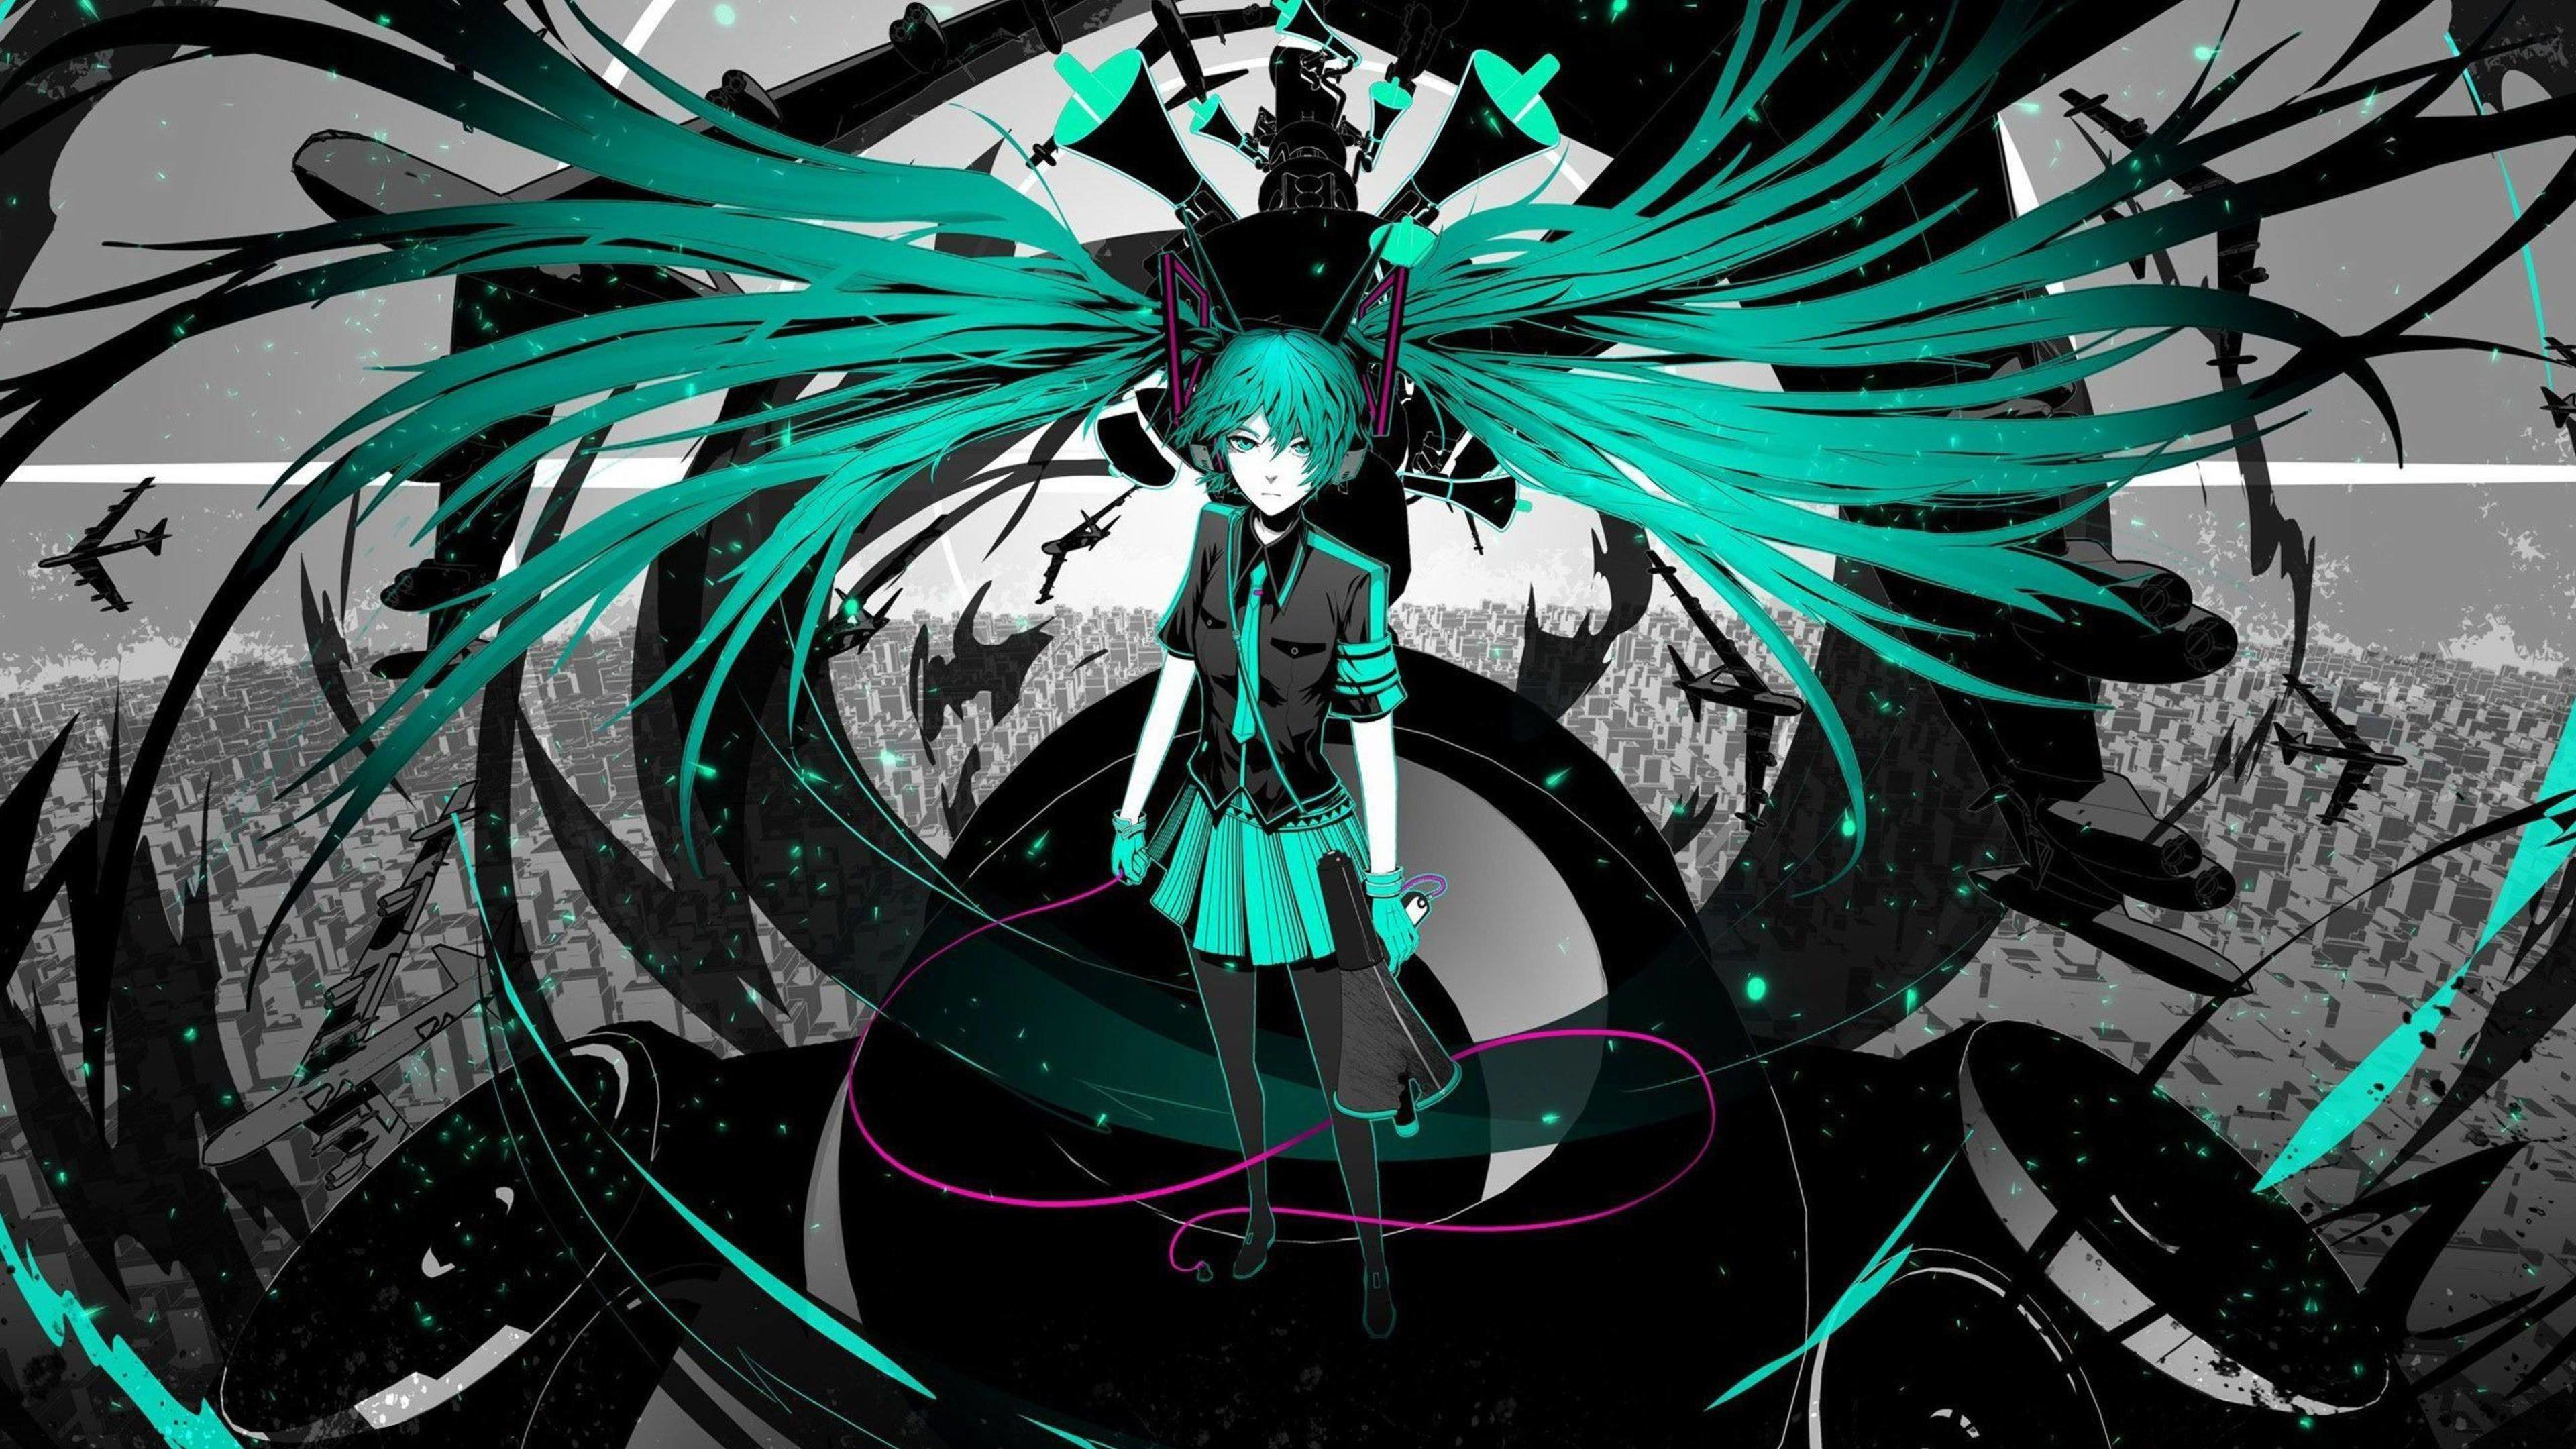 3840x2160 free hd hatsune miku wallpapers hd wallpapers background photos windows  apple tablet artworks 4k download 3840×2160 Wallpaper HD